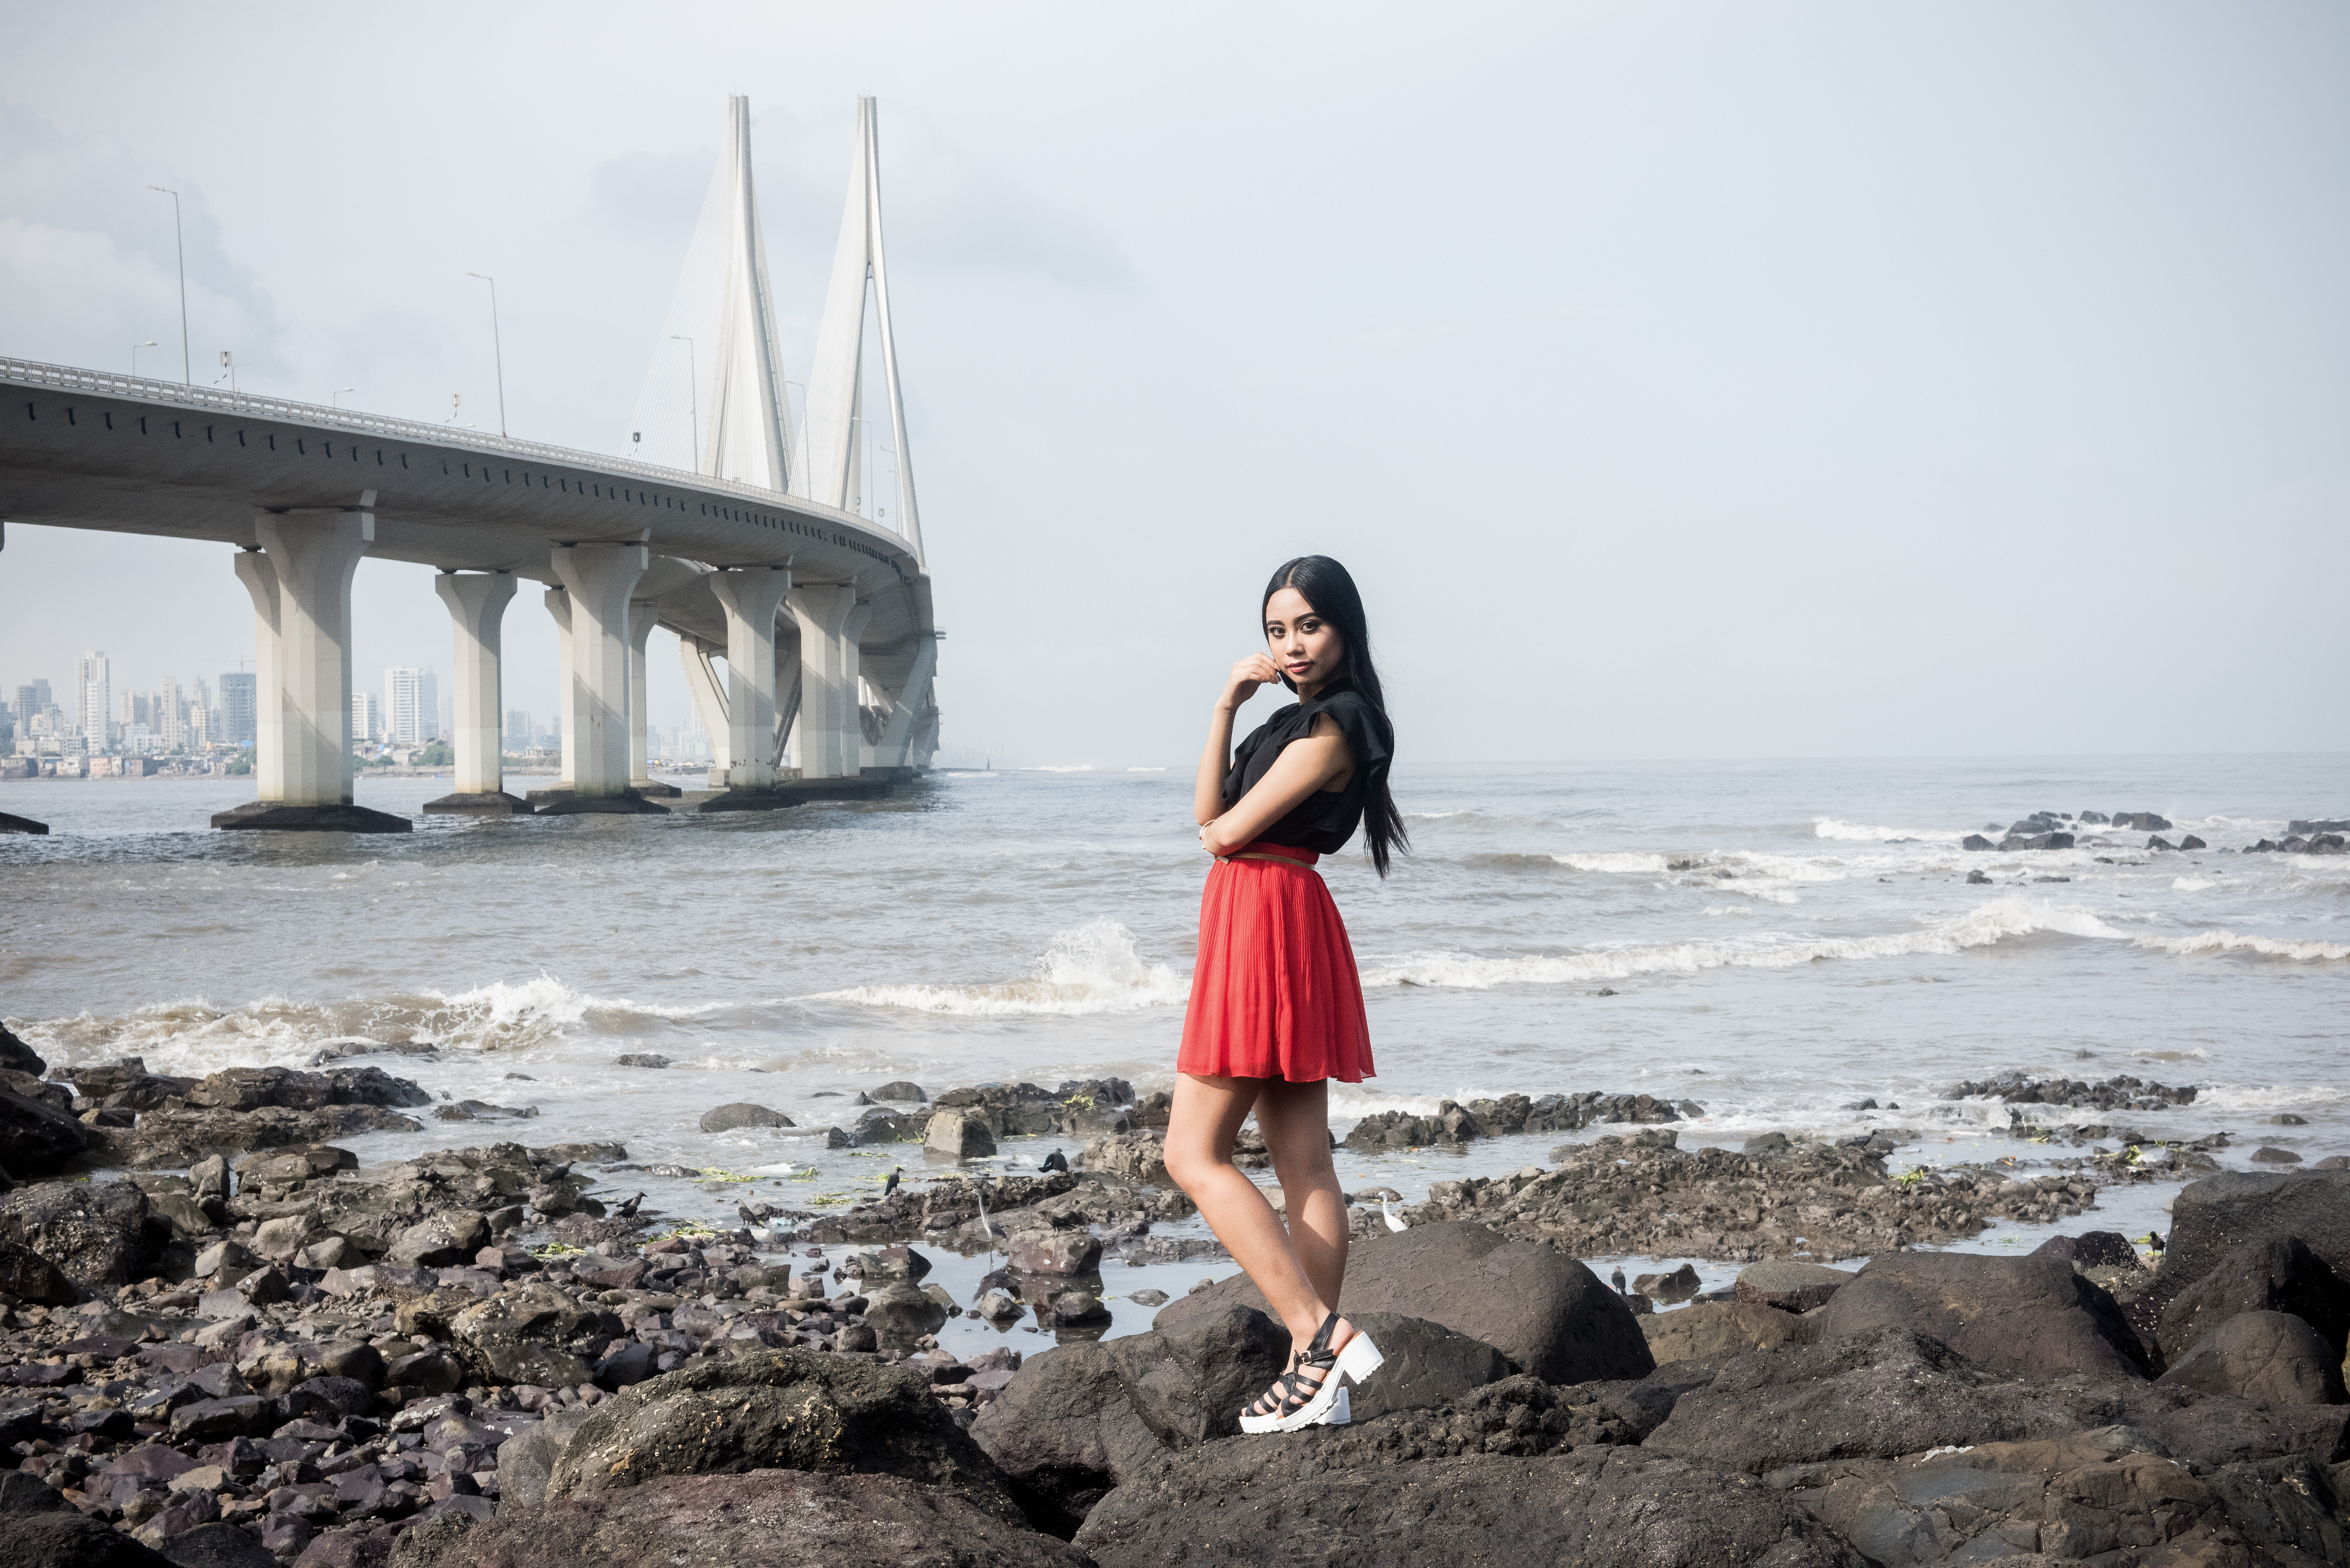 Fake Accent Bandra-Worli Sea Link Mumbai Bombay India Lulu Meets World Professional Travel Blogger Lumen Beltran